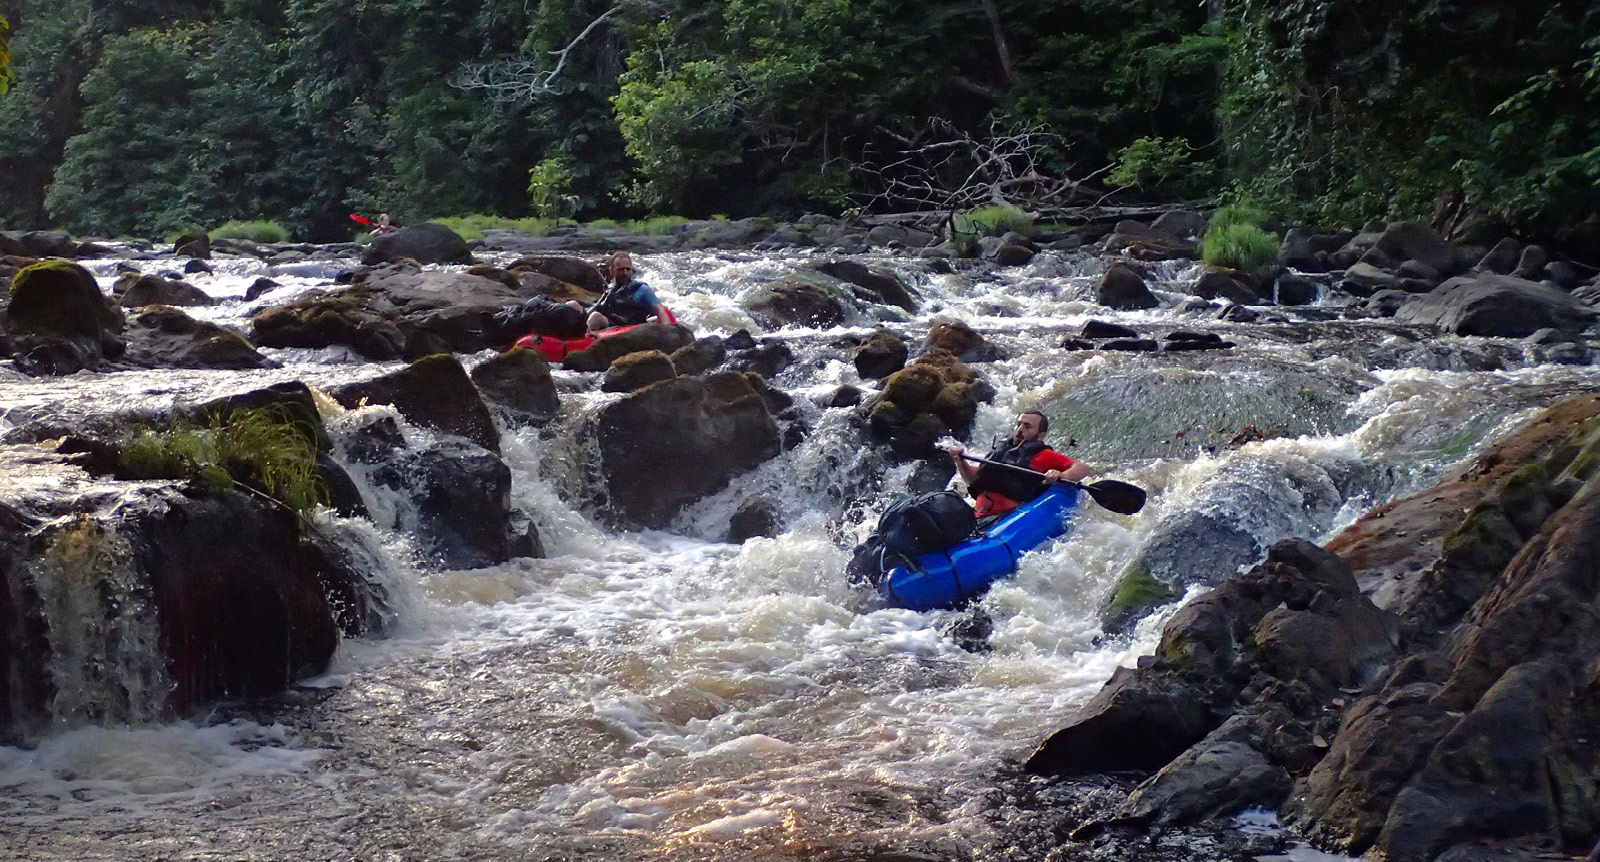 Rafting down the rapids in Gabon